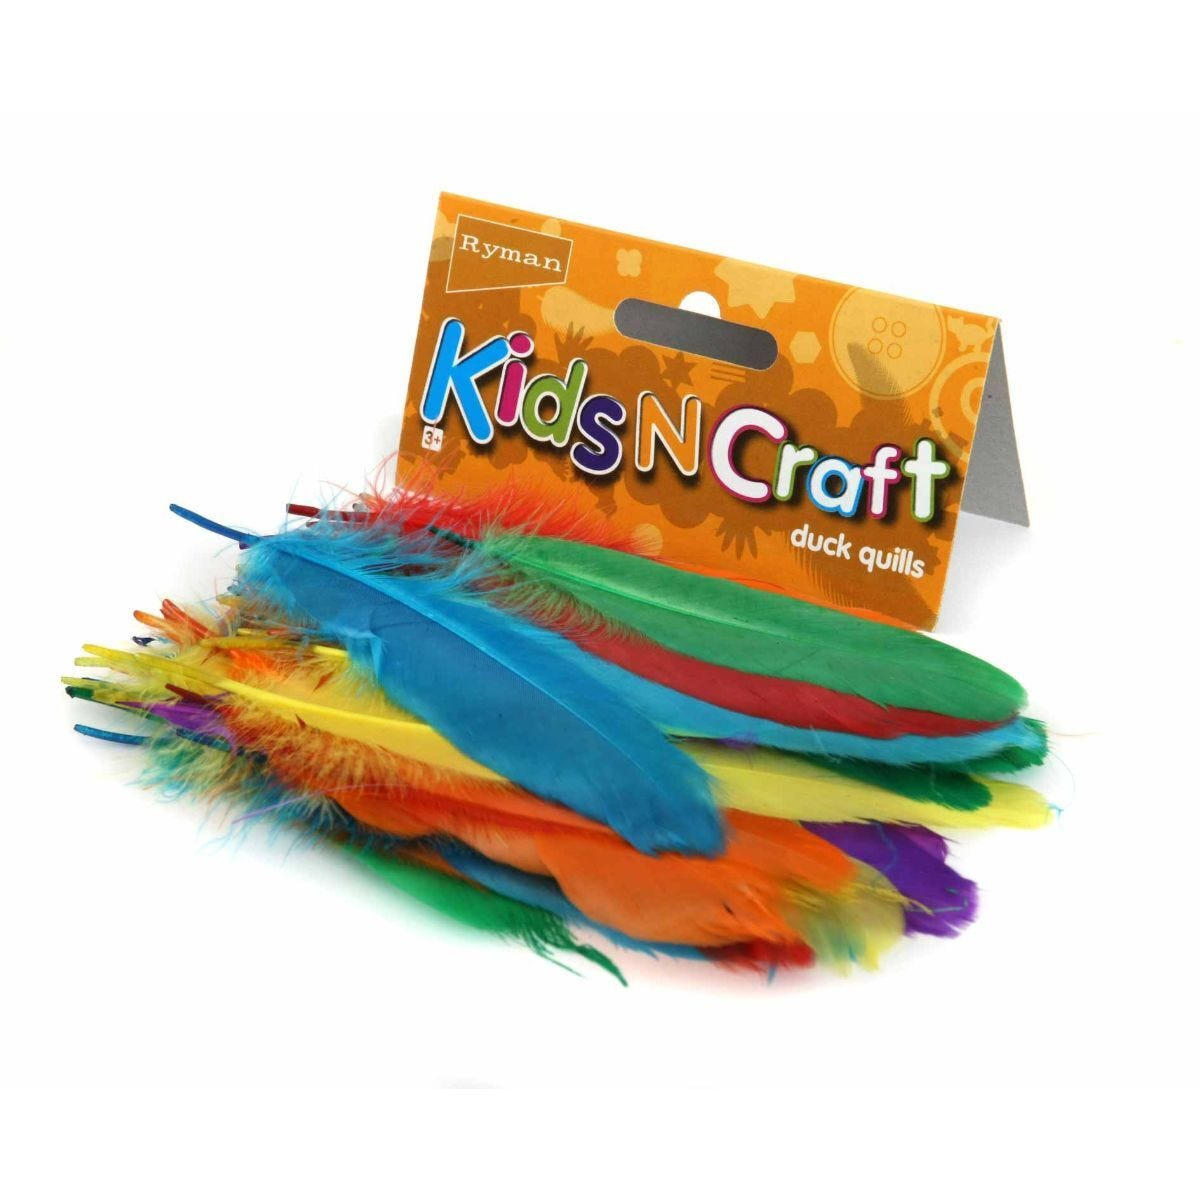 Ryman Activity Kit Duck Quills